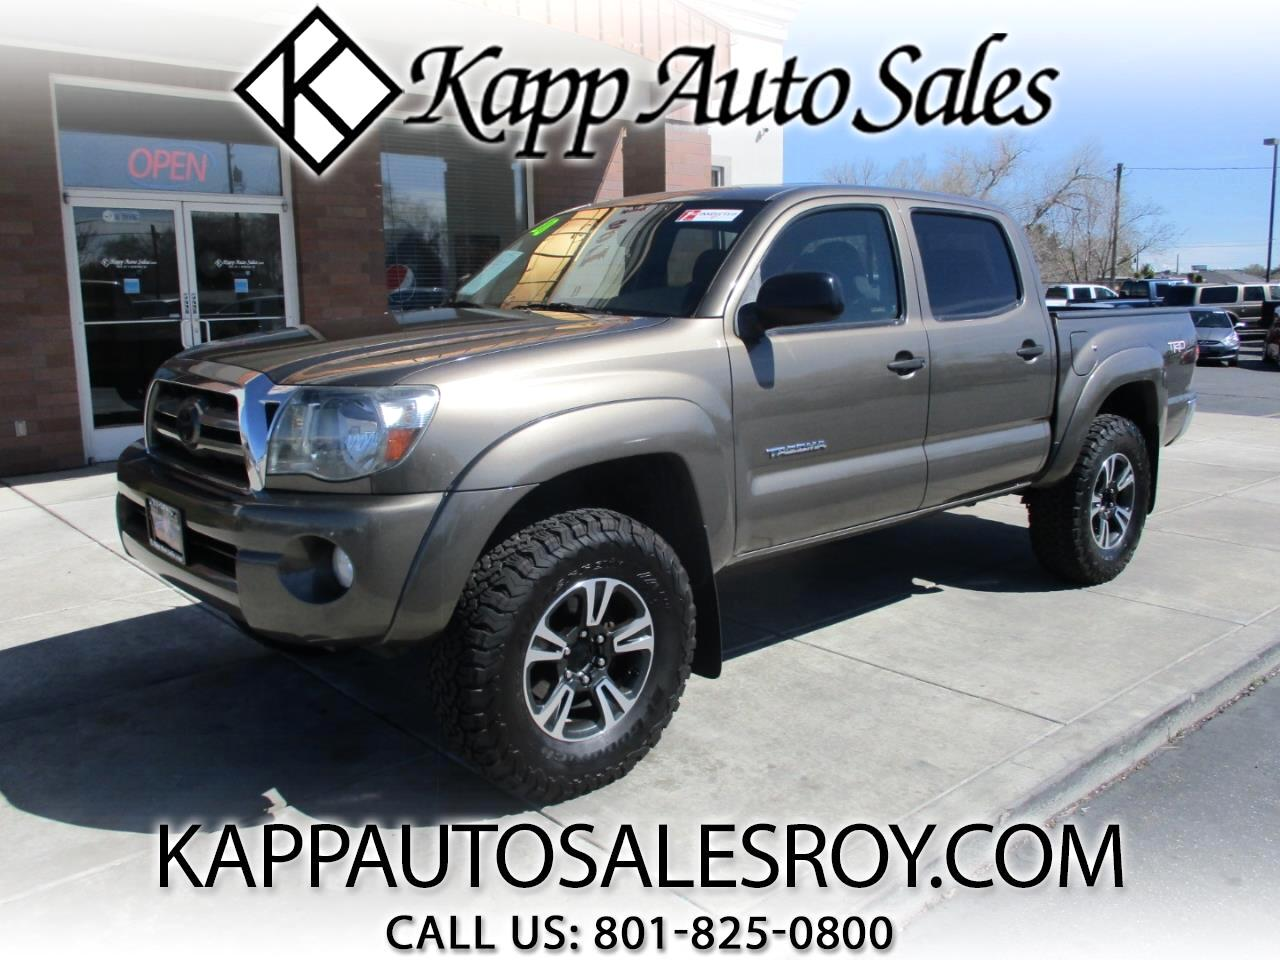 2010 Toyota Tacoma 4WD Double Cab SR5 V6 TRD Off Road